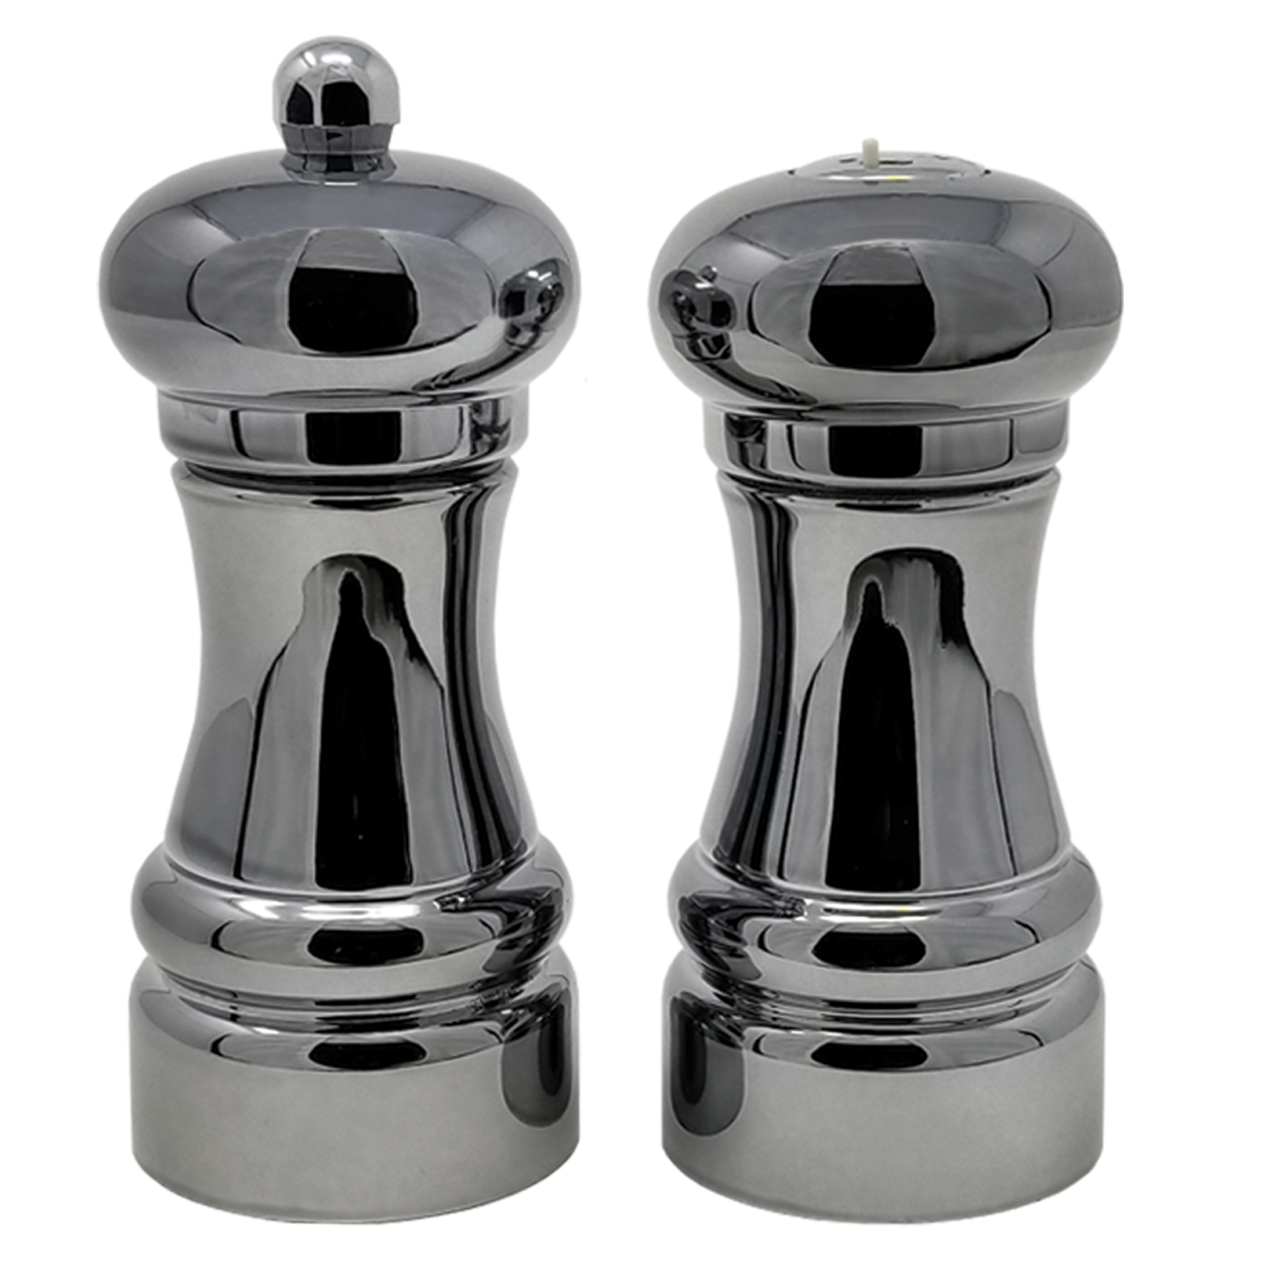 Chef Specialties 90040 salt / pepper shaker & mill set